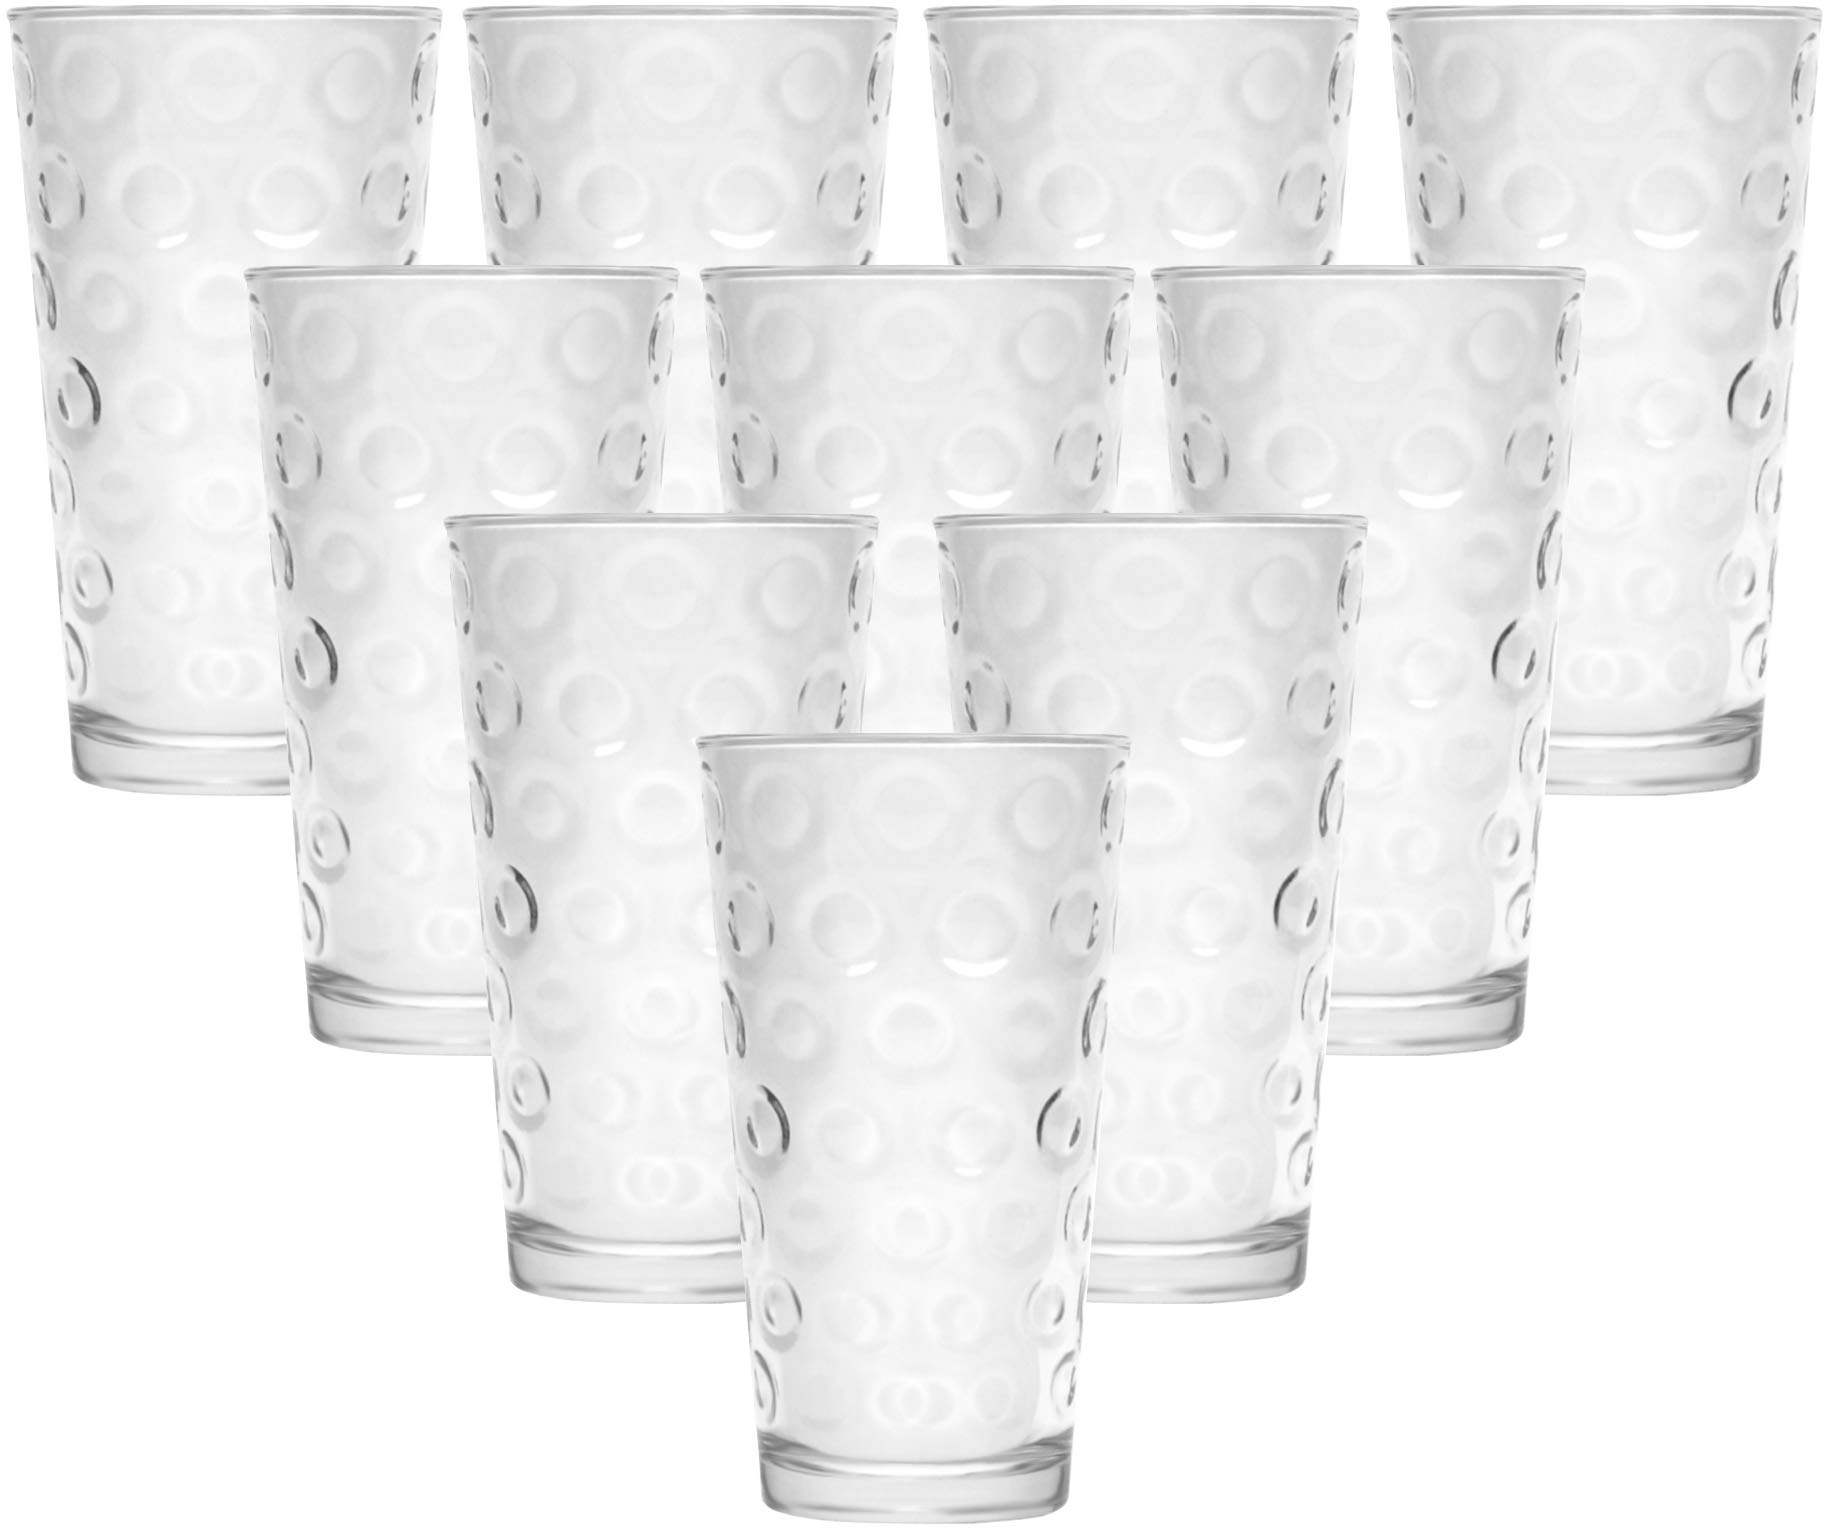 Circleware Circles Huge Set of 10 Tall Heavy Base Highball Drinking Glasses, 17 oz, Lead-Free Glass Tumbler Drink Cups for Water, Beer, All Beverage